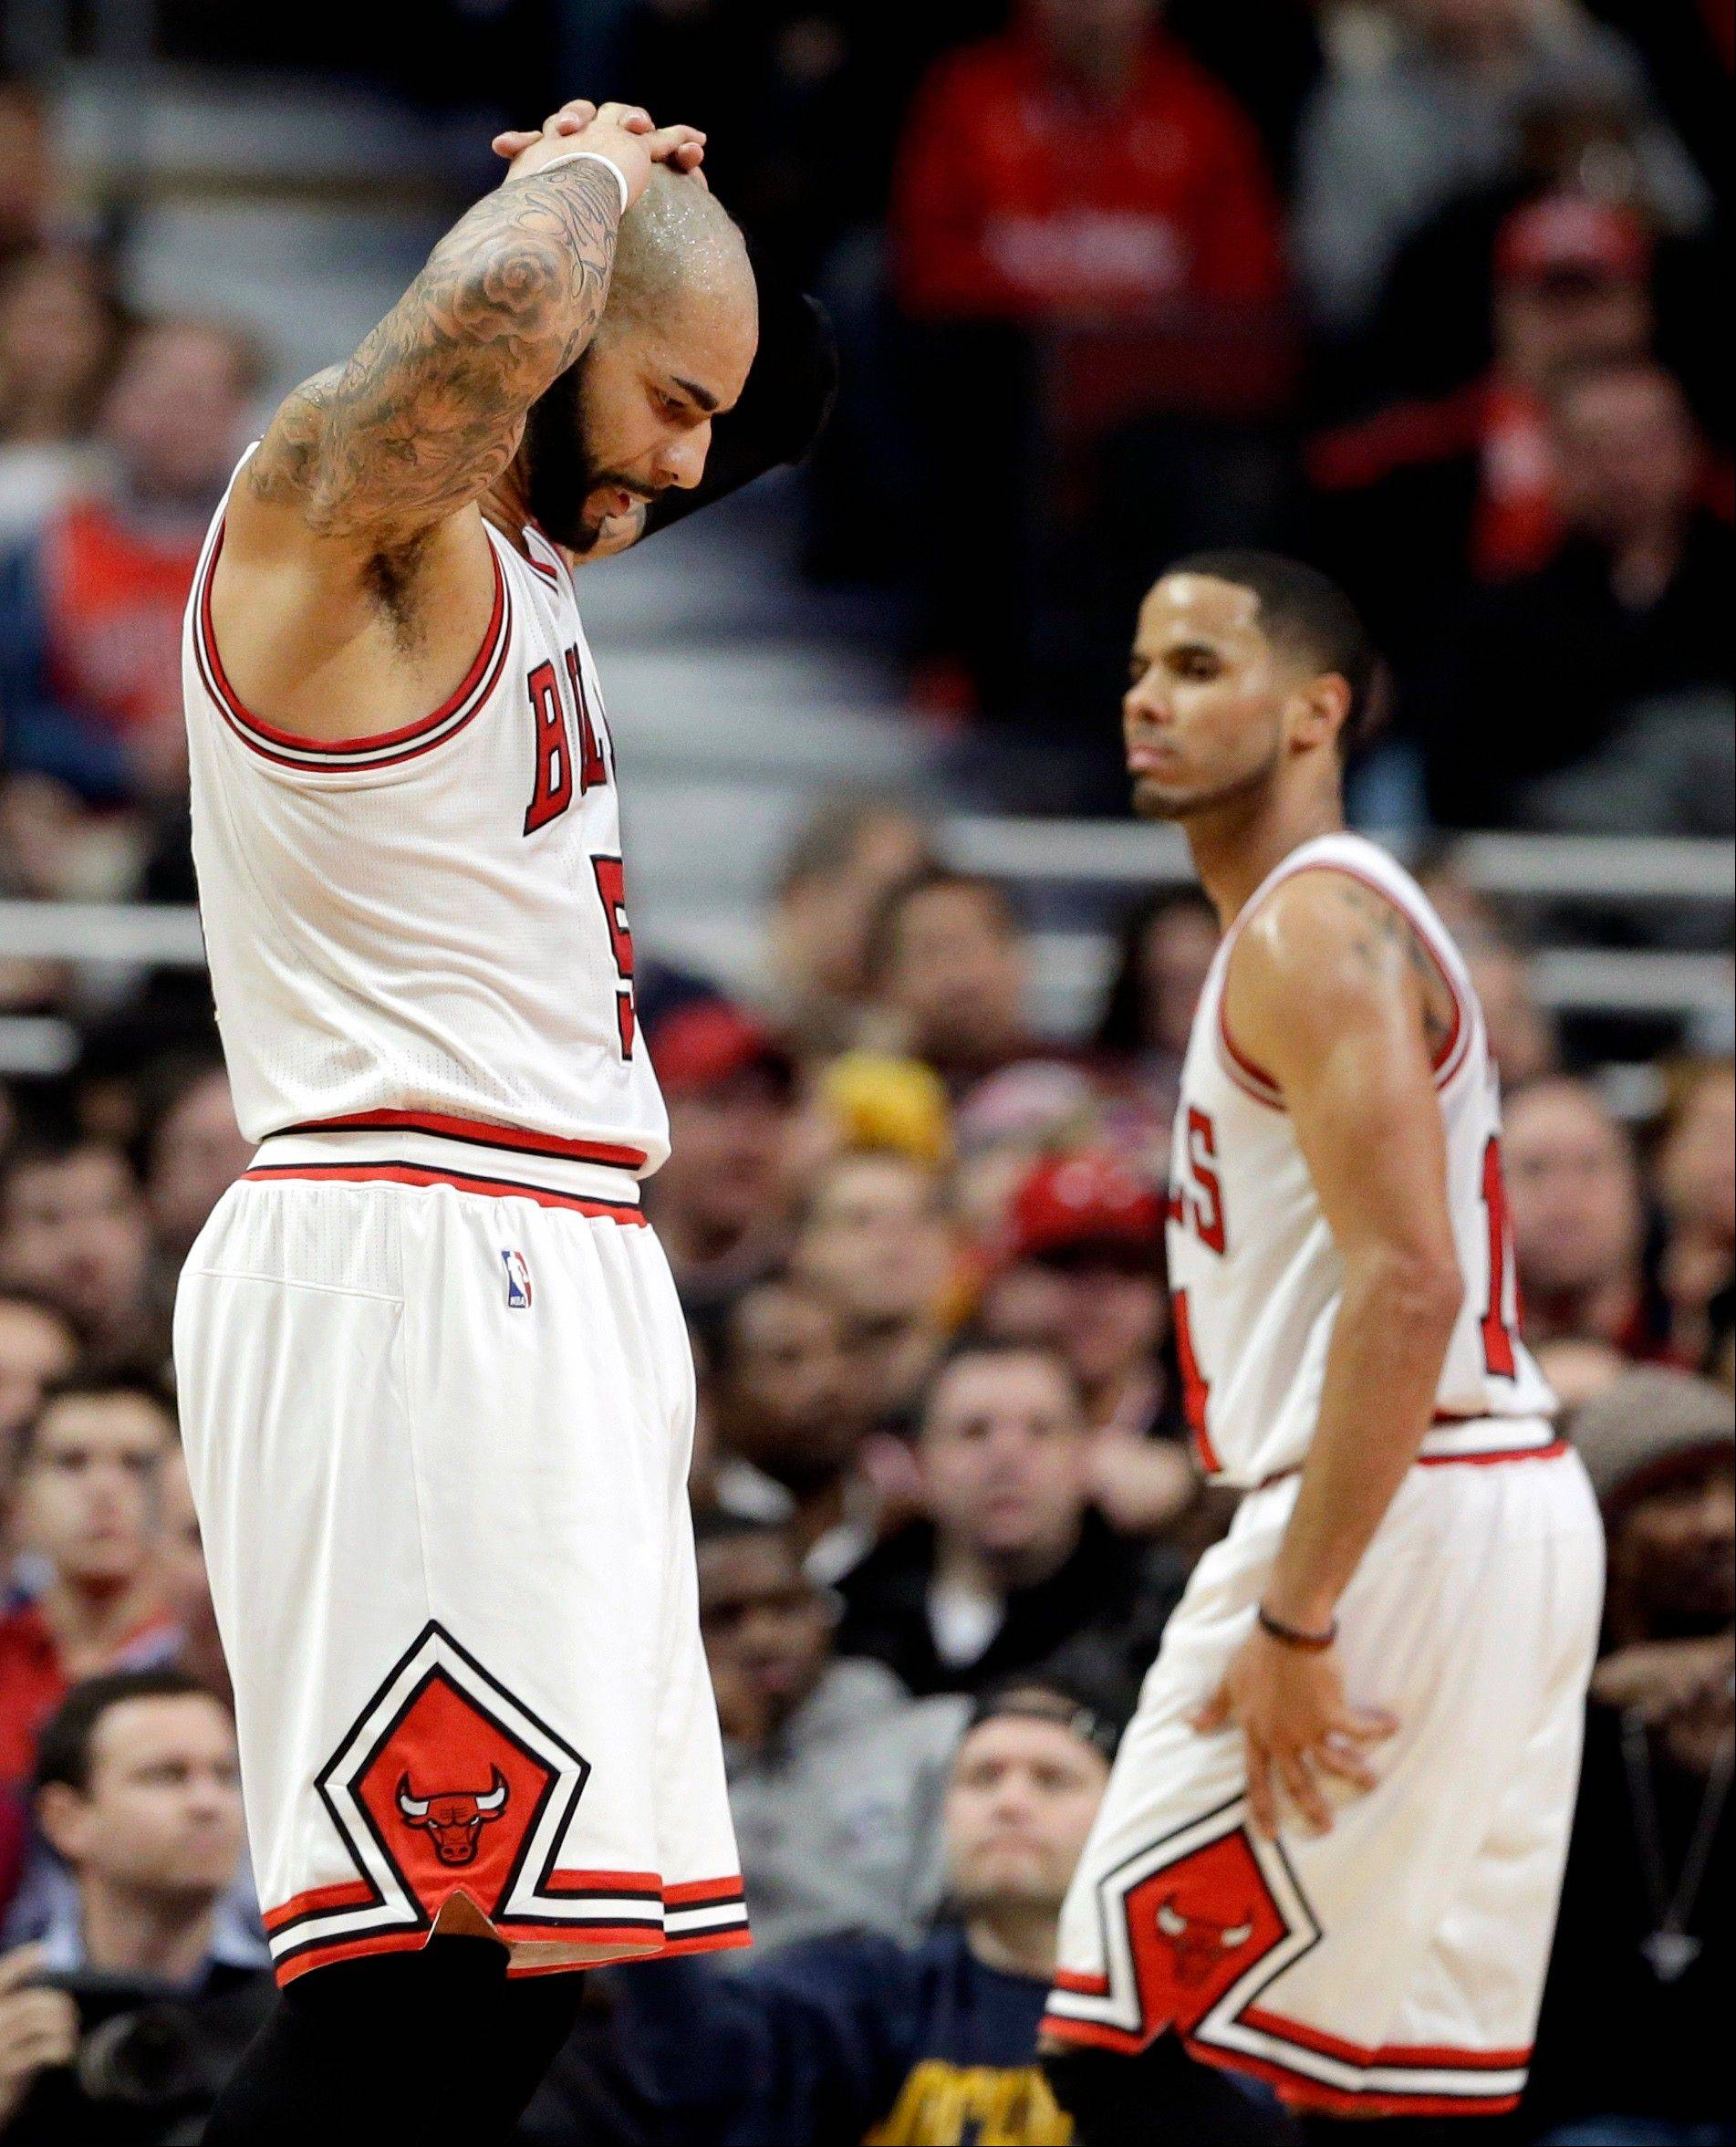 Carlos Boozer (5), left, and D.J. Augustin (14) react after the Clippers� Darren Collison was fouled in the second half of the Bulls� loss on Friday at the United Center.